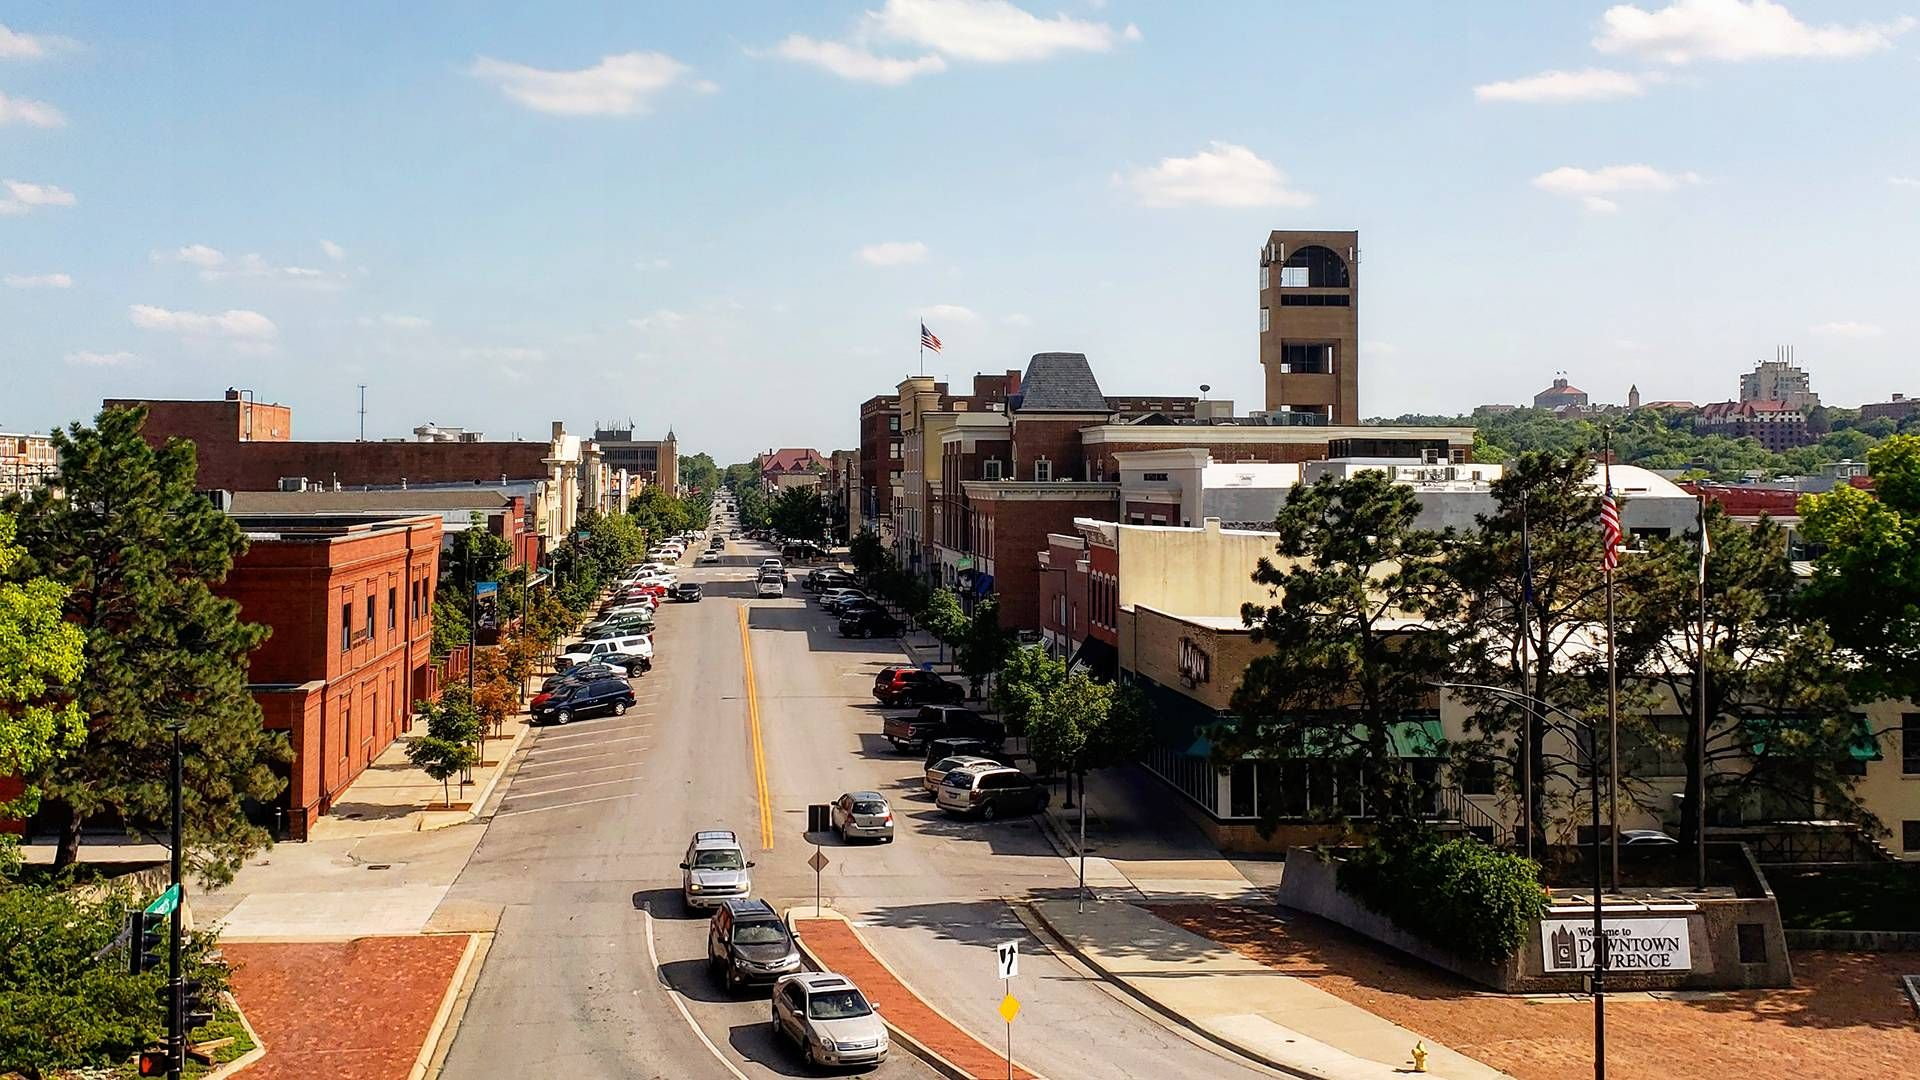 Downtown area of Lawrence, Kansas. Rewire PBS Living Rural